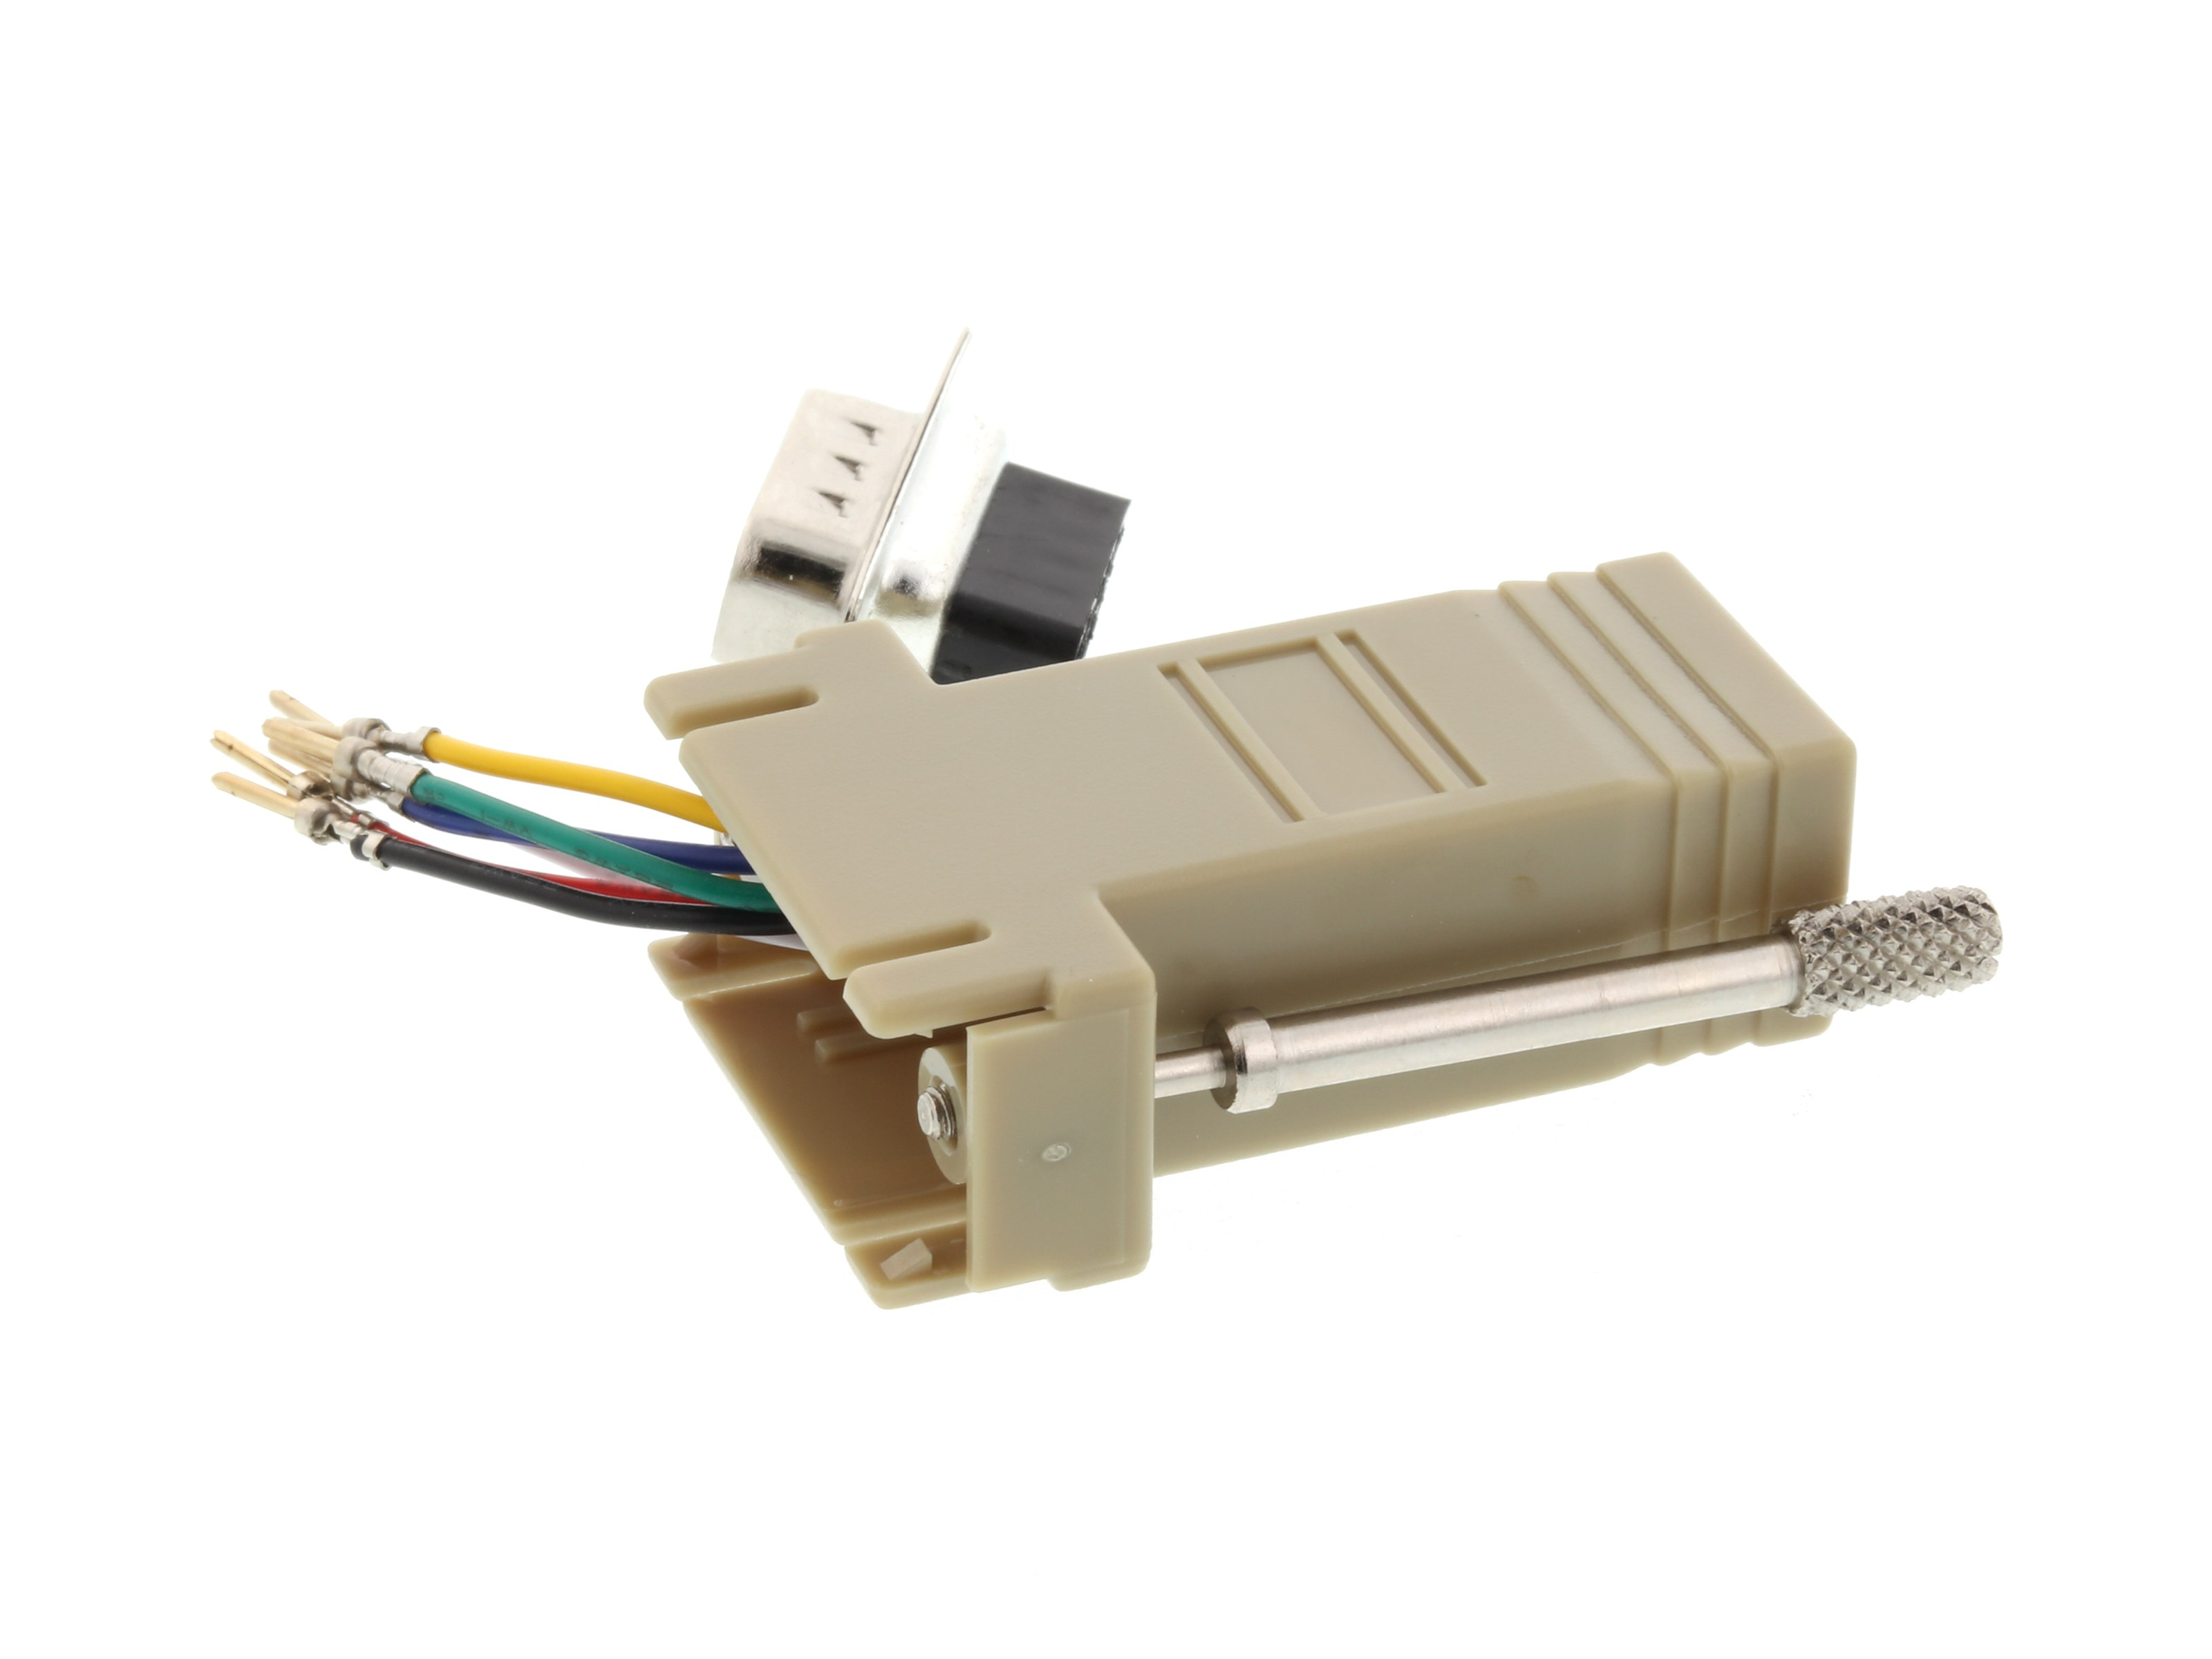 Modular Adapter Kit Db9 Male To Rj11 Rj12 Beige Computer Cable Rack Wiring Picture Of